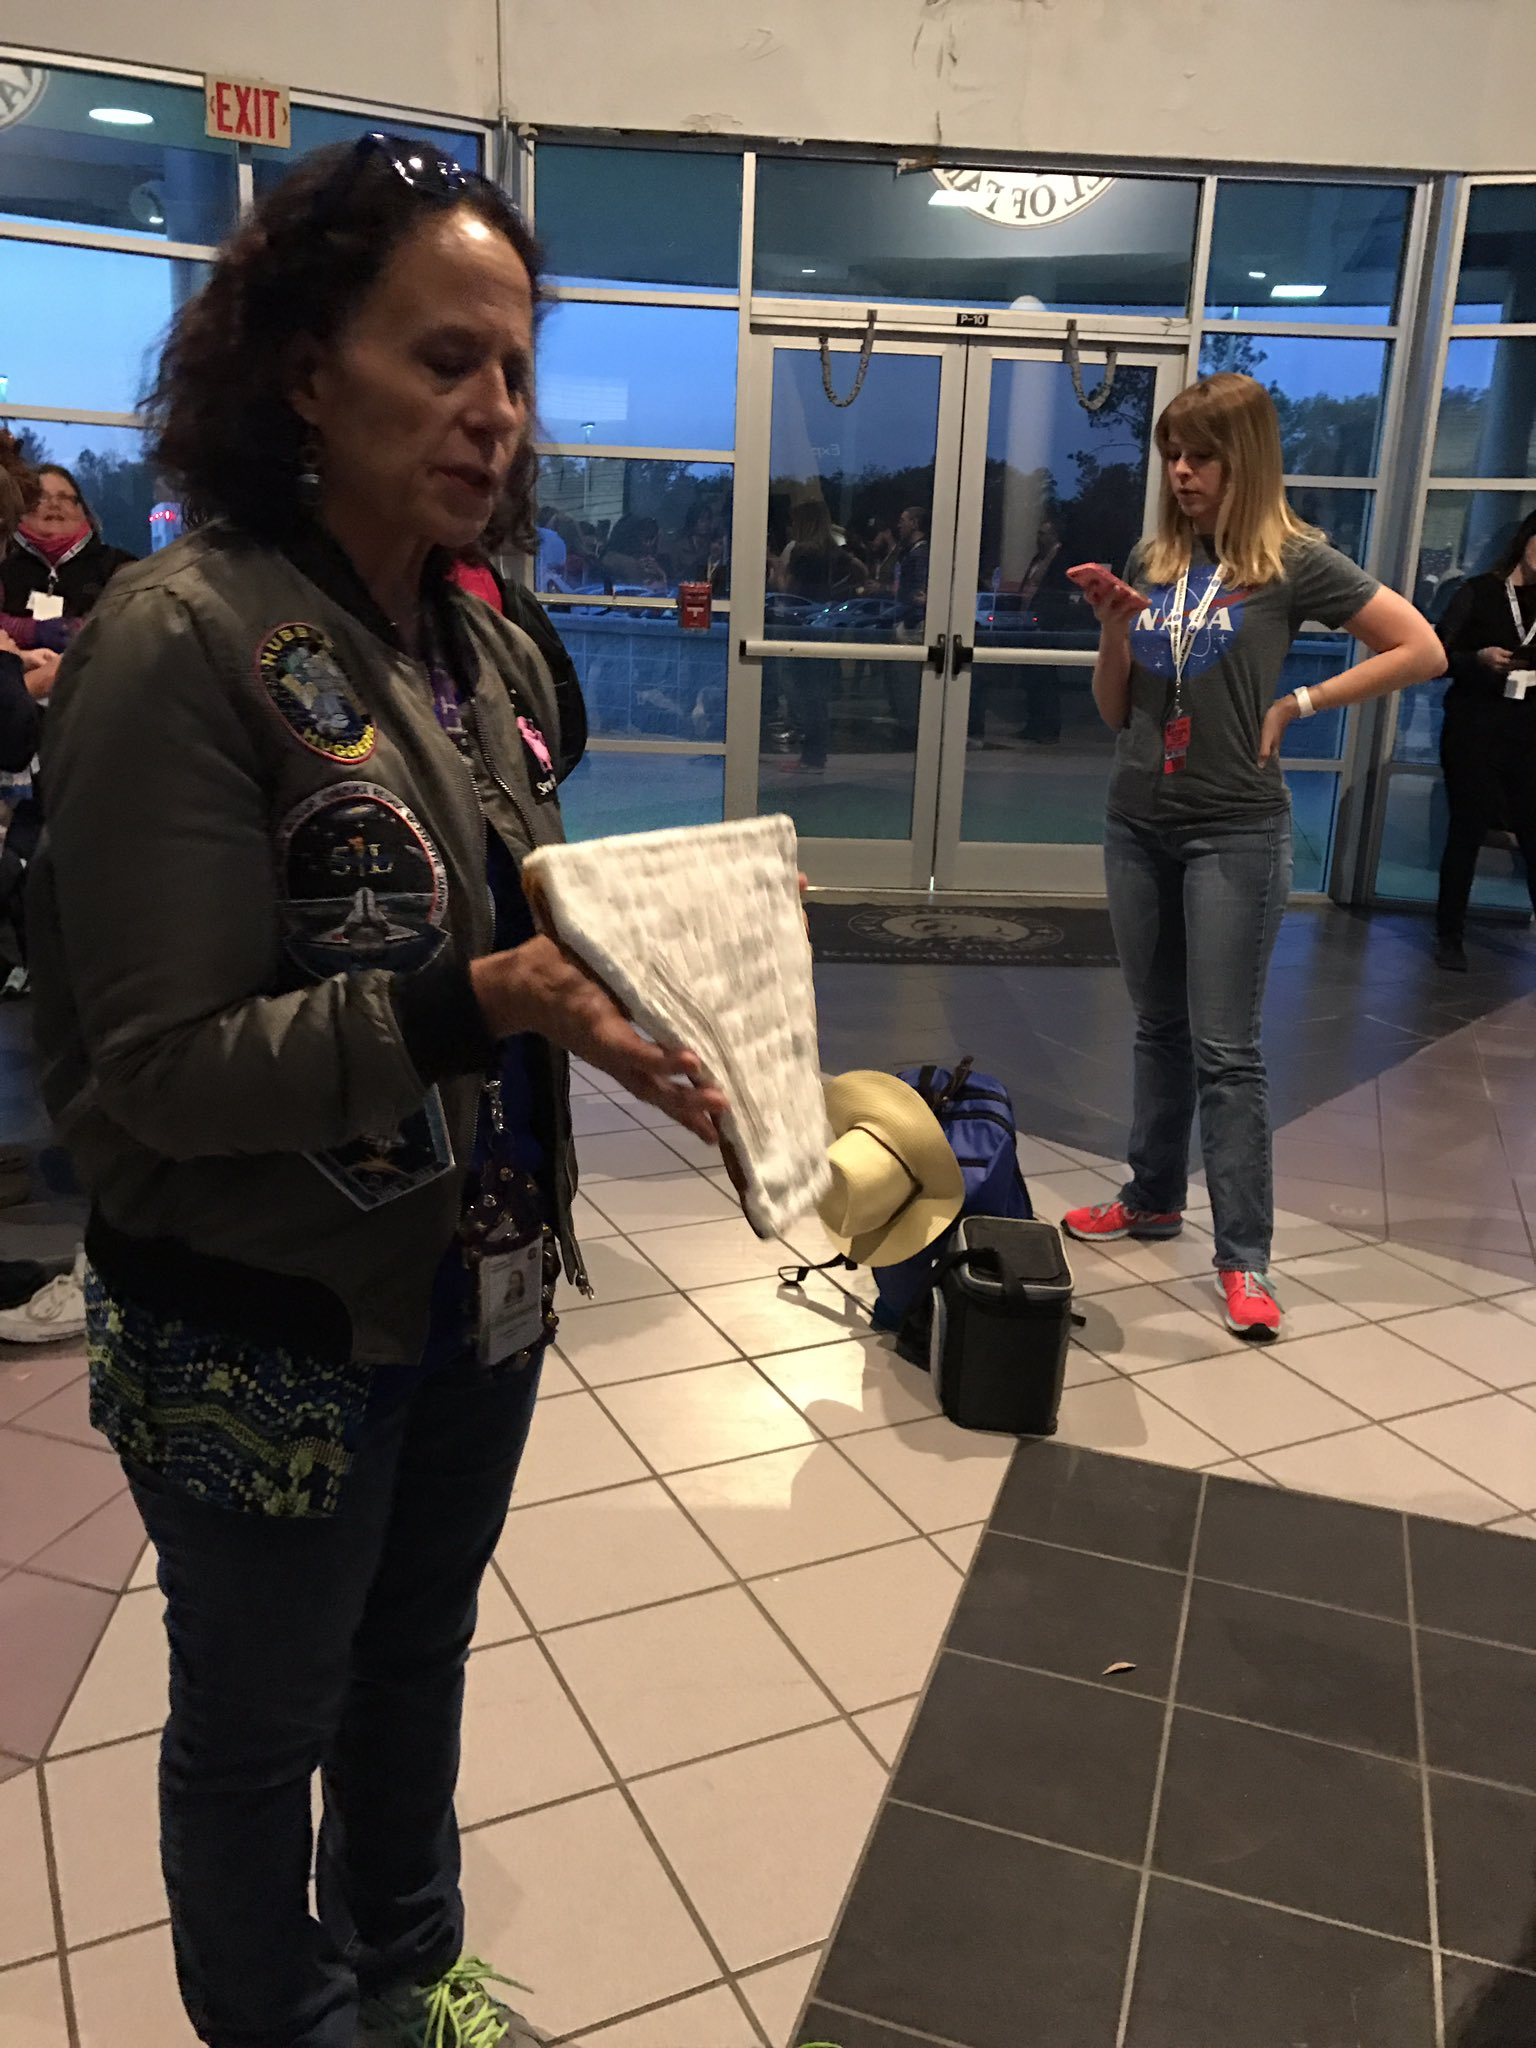 She's holding part of the blanket ( it was baked at 650 and 850 degrees!) from the Atlantis,  #devilsChat #NASASocial https://t.co/SLDC8NaR5S